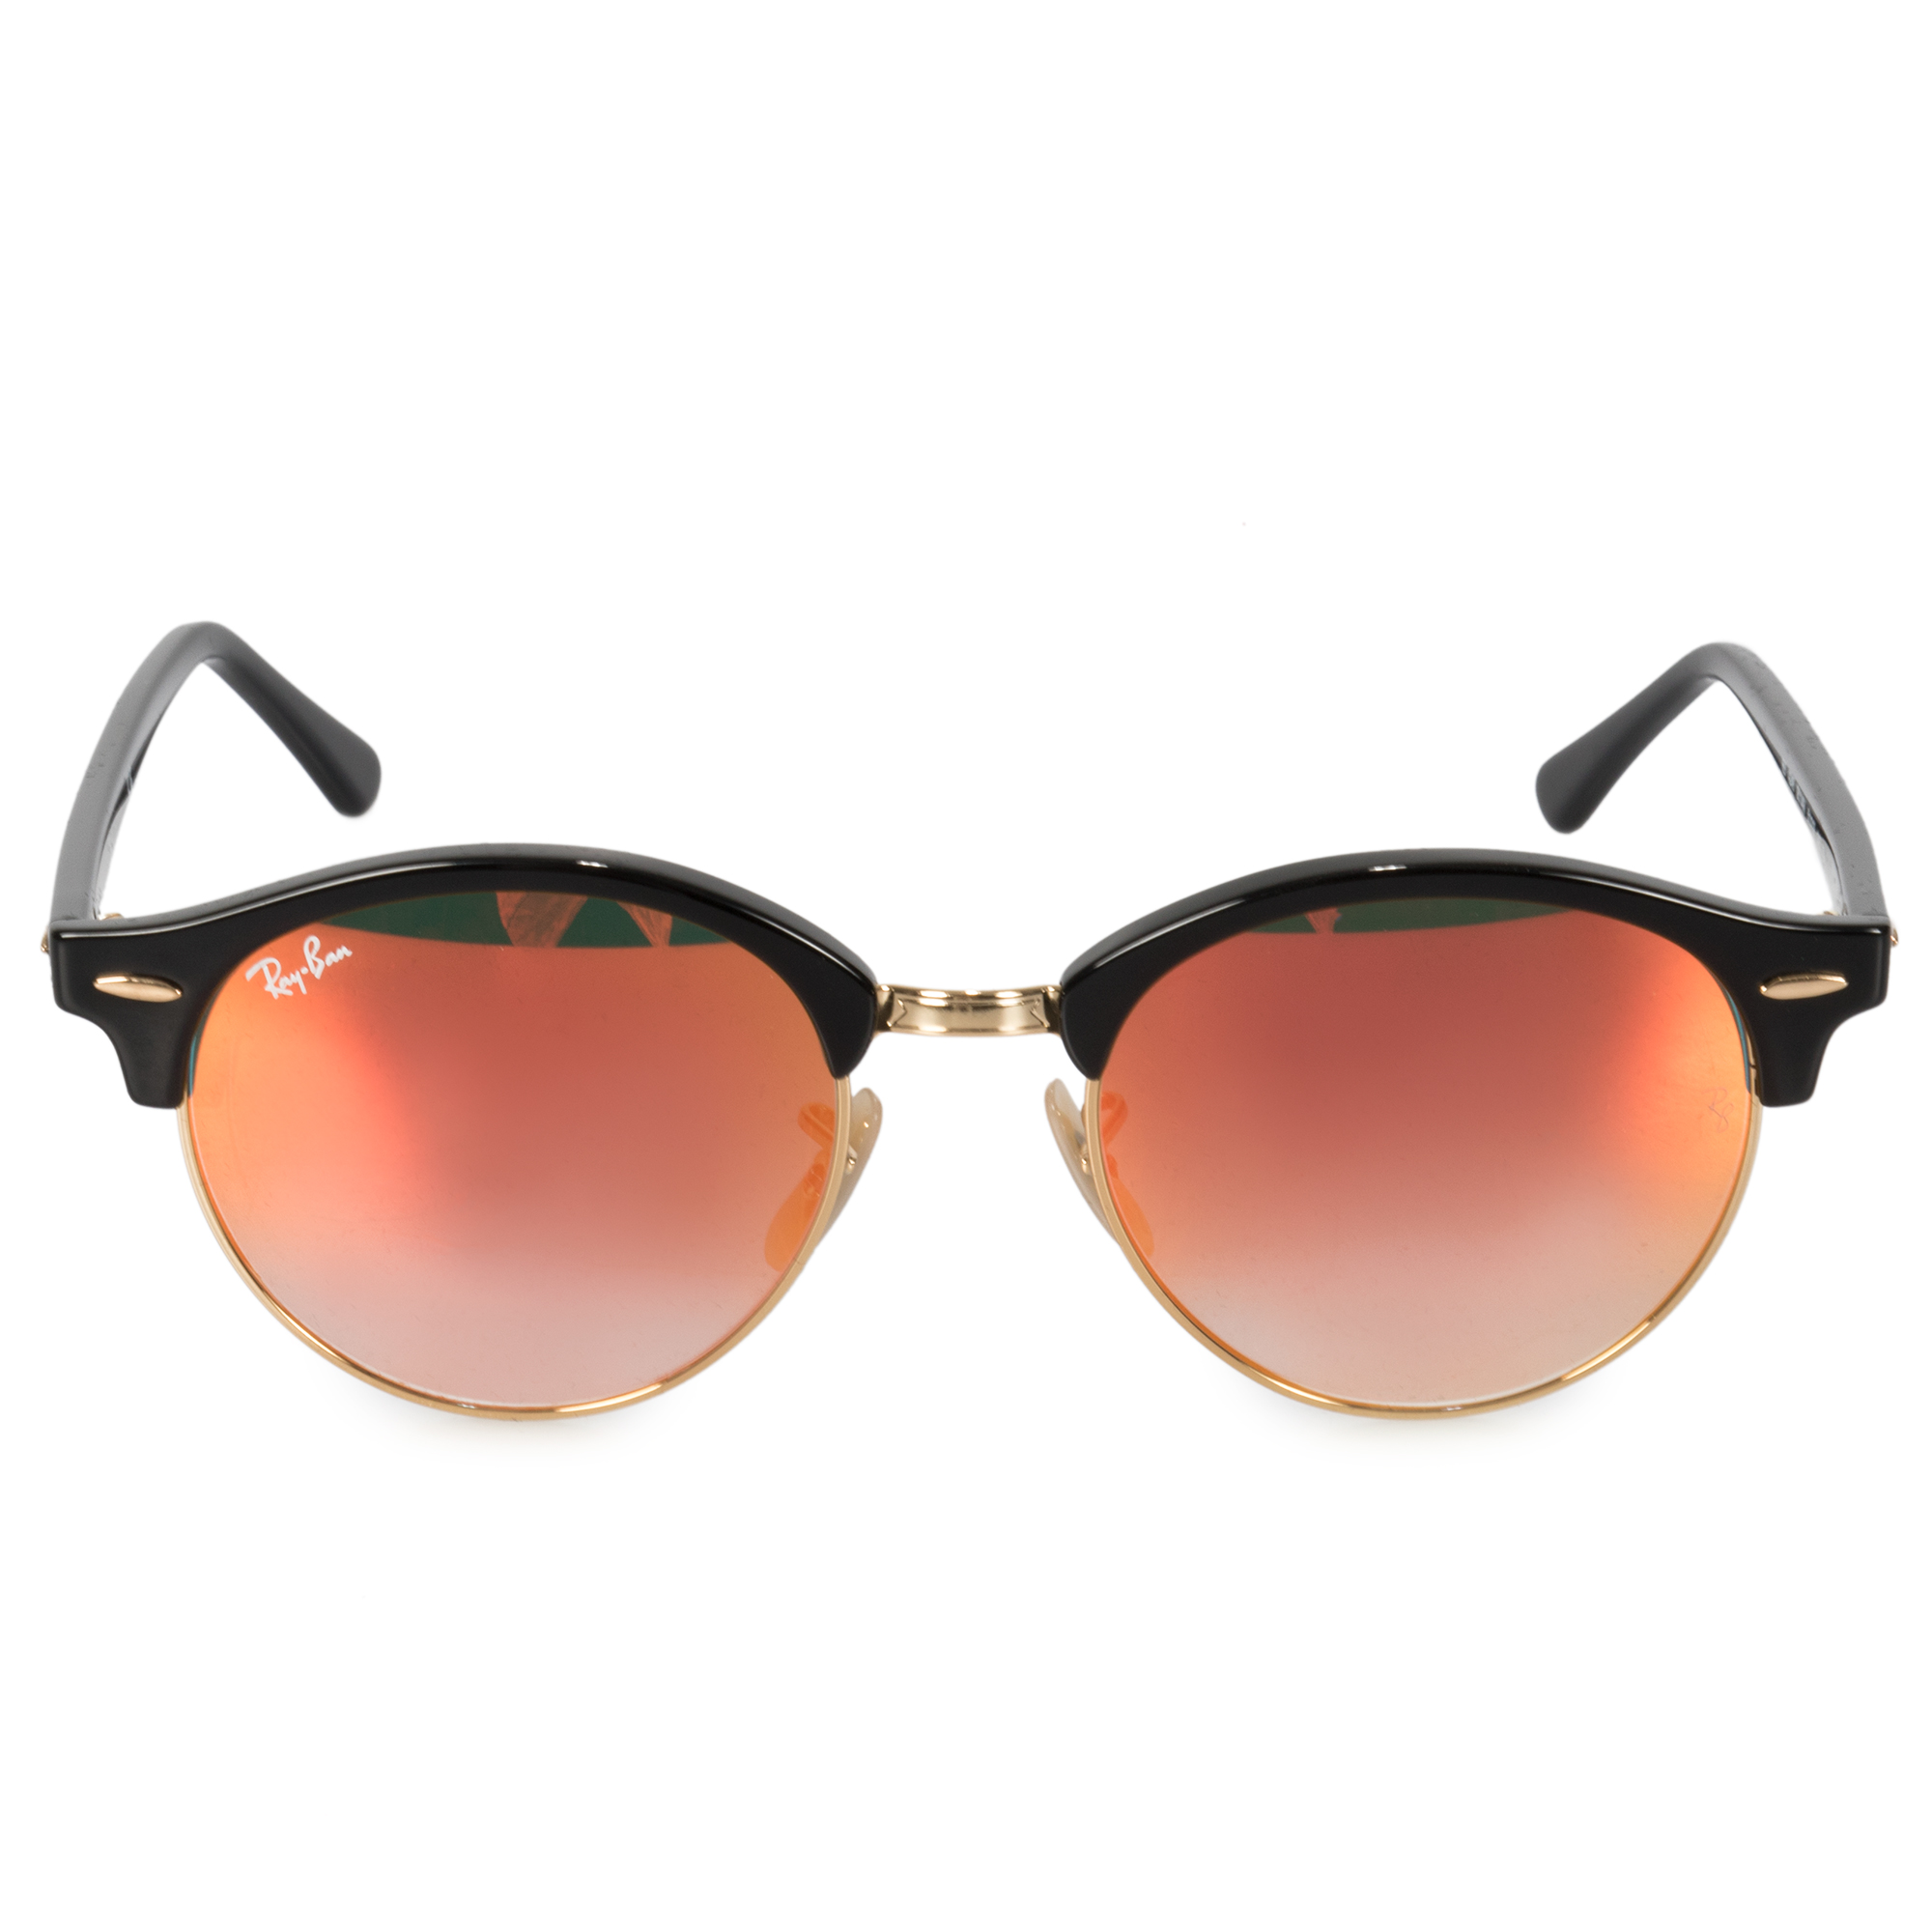 33467006d8 Details about Ray-Ban Ray-Ban Clubround Classic Sunglasses RB4246 901 4W 51